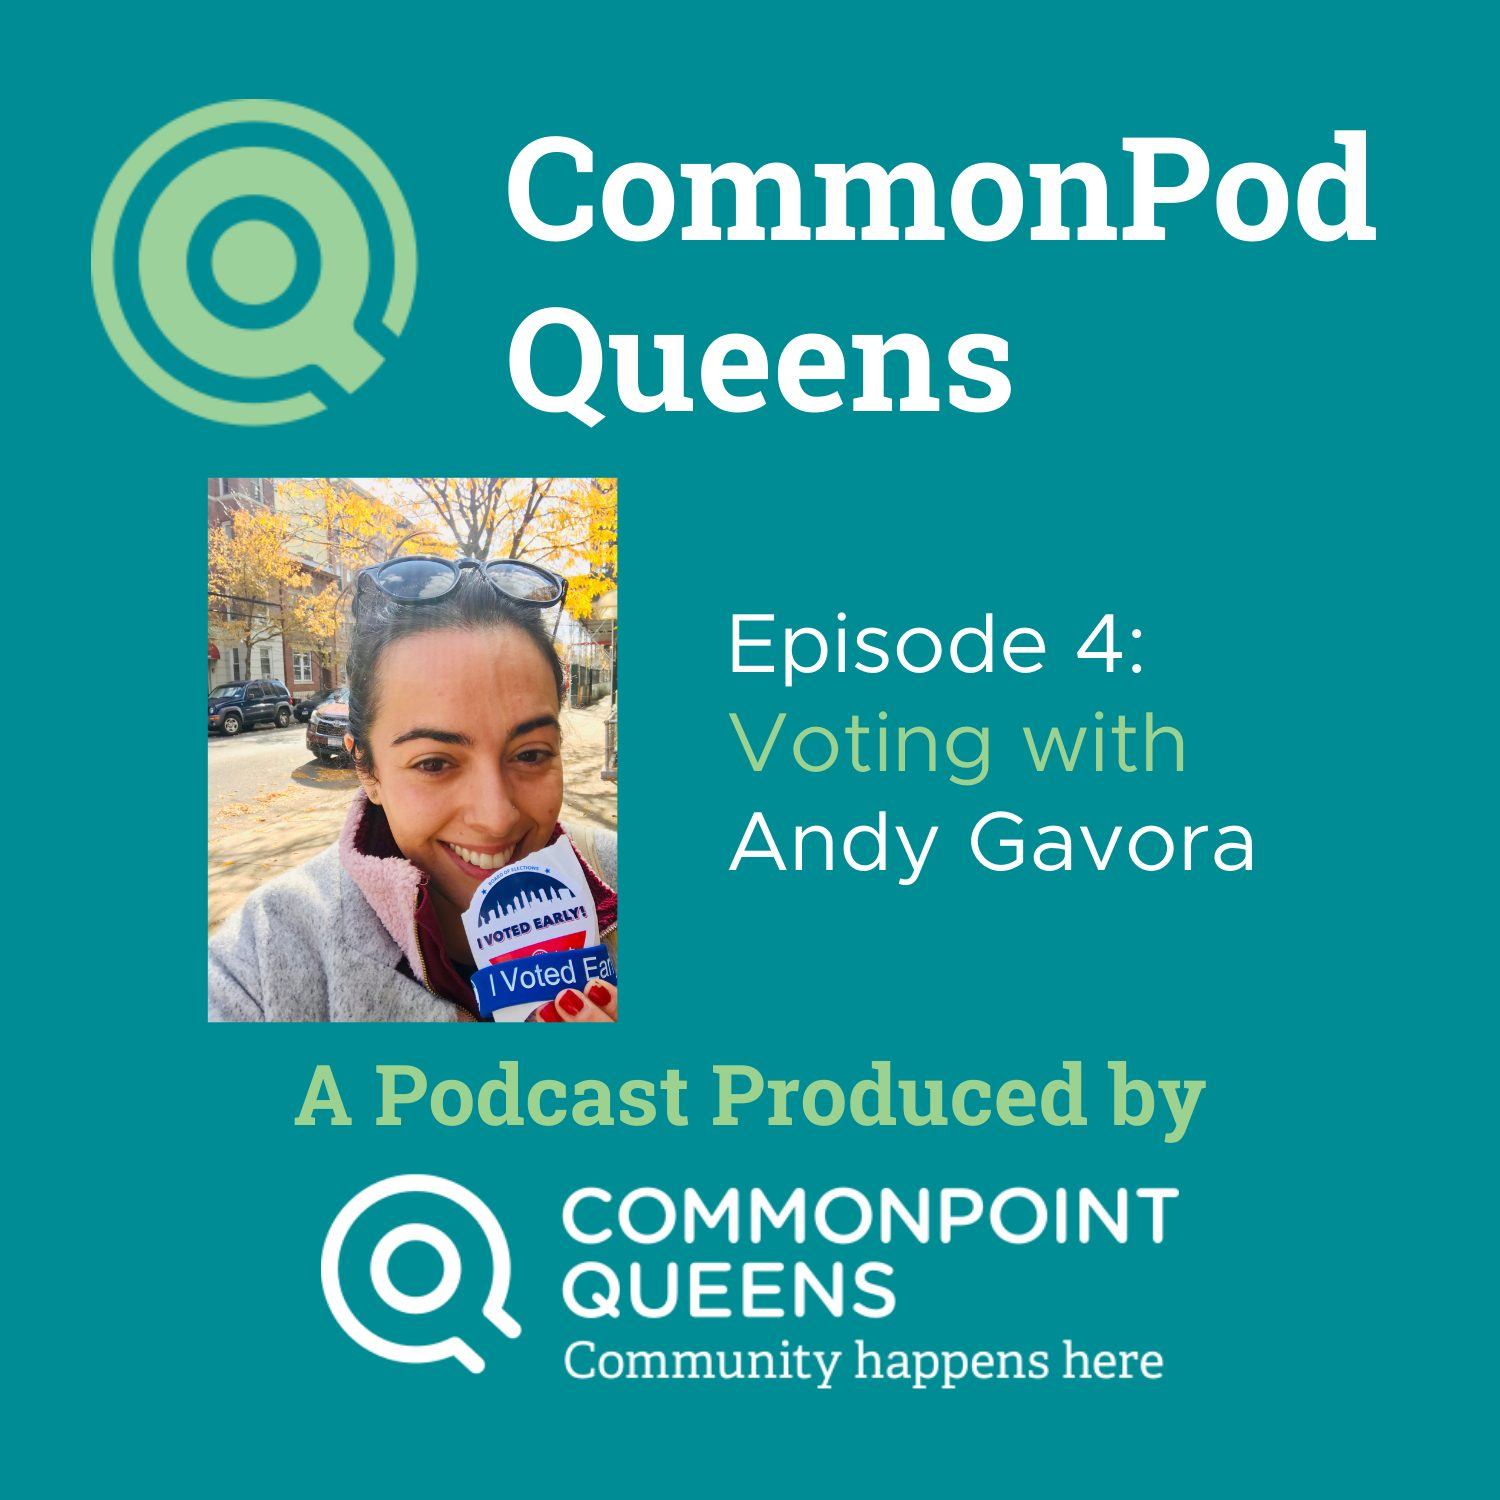 CommonPod Queens Episode 4: Voting with Andy Gavora